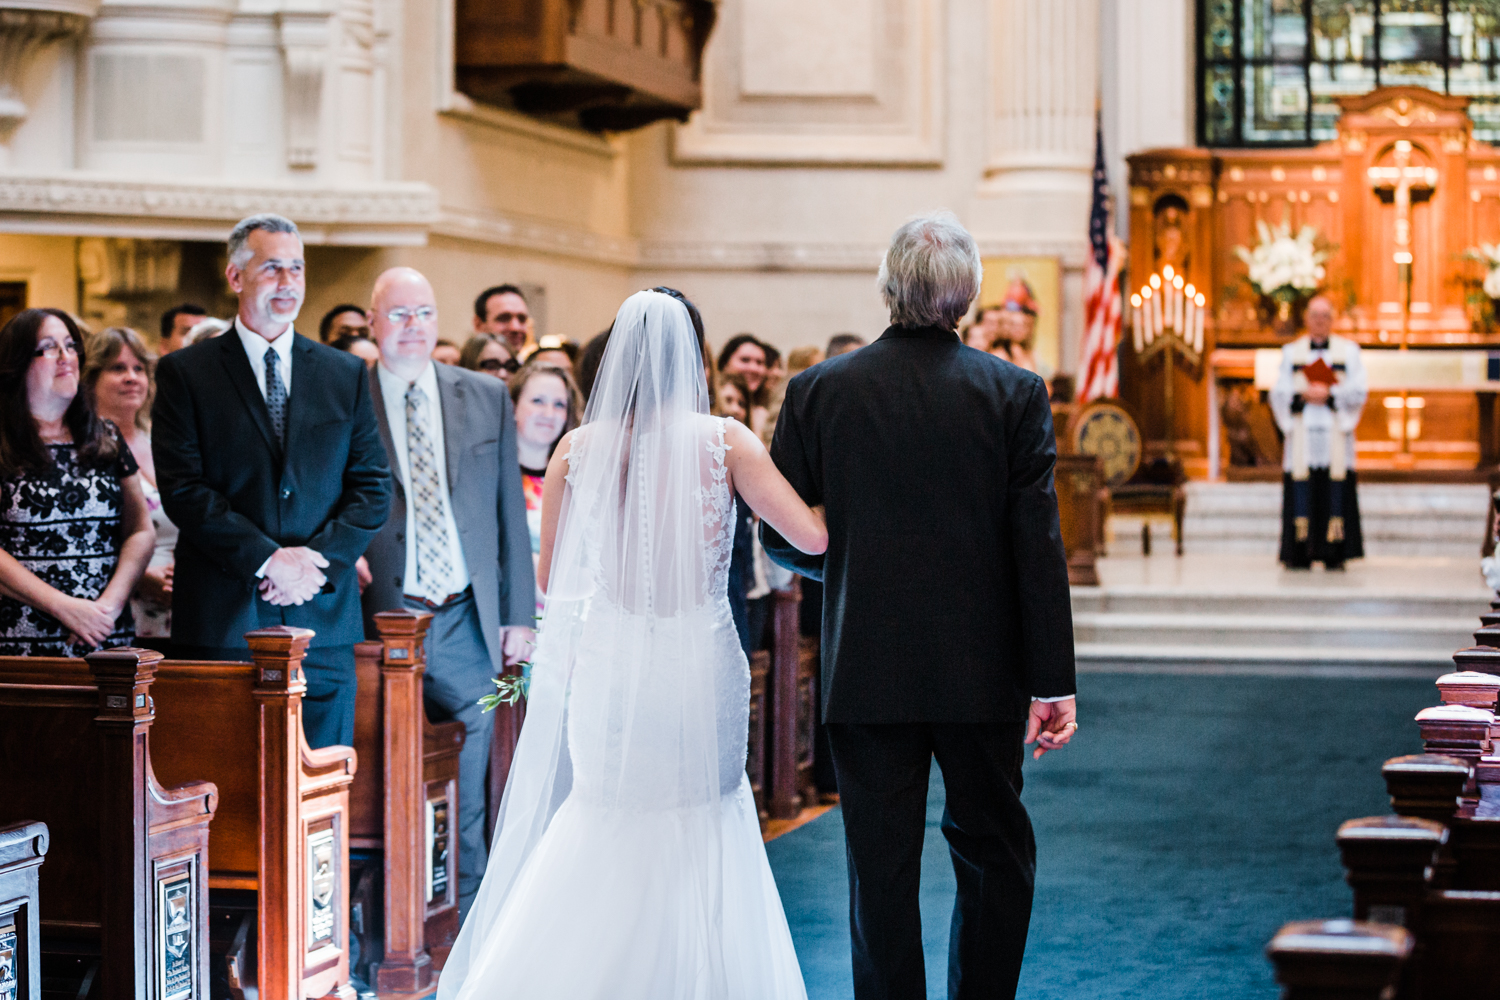 father of the bride walks his daughter down the aisle at her Annapolis, Maryland wedding